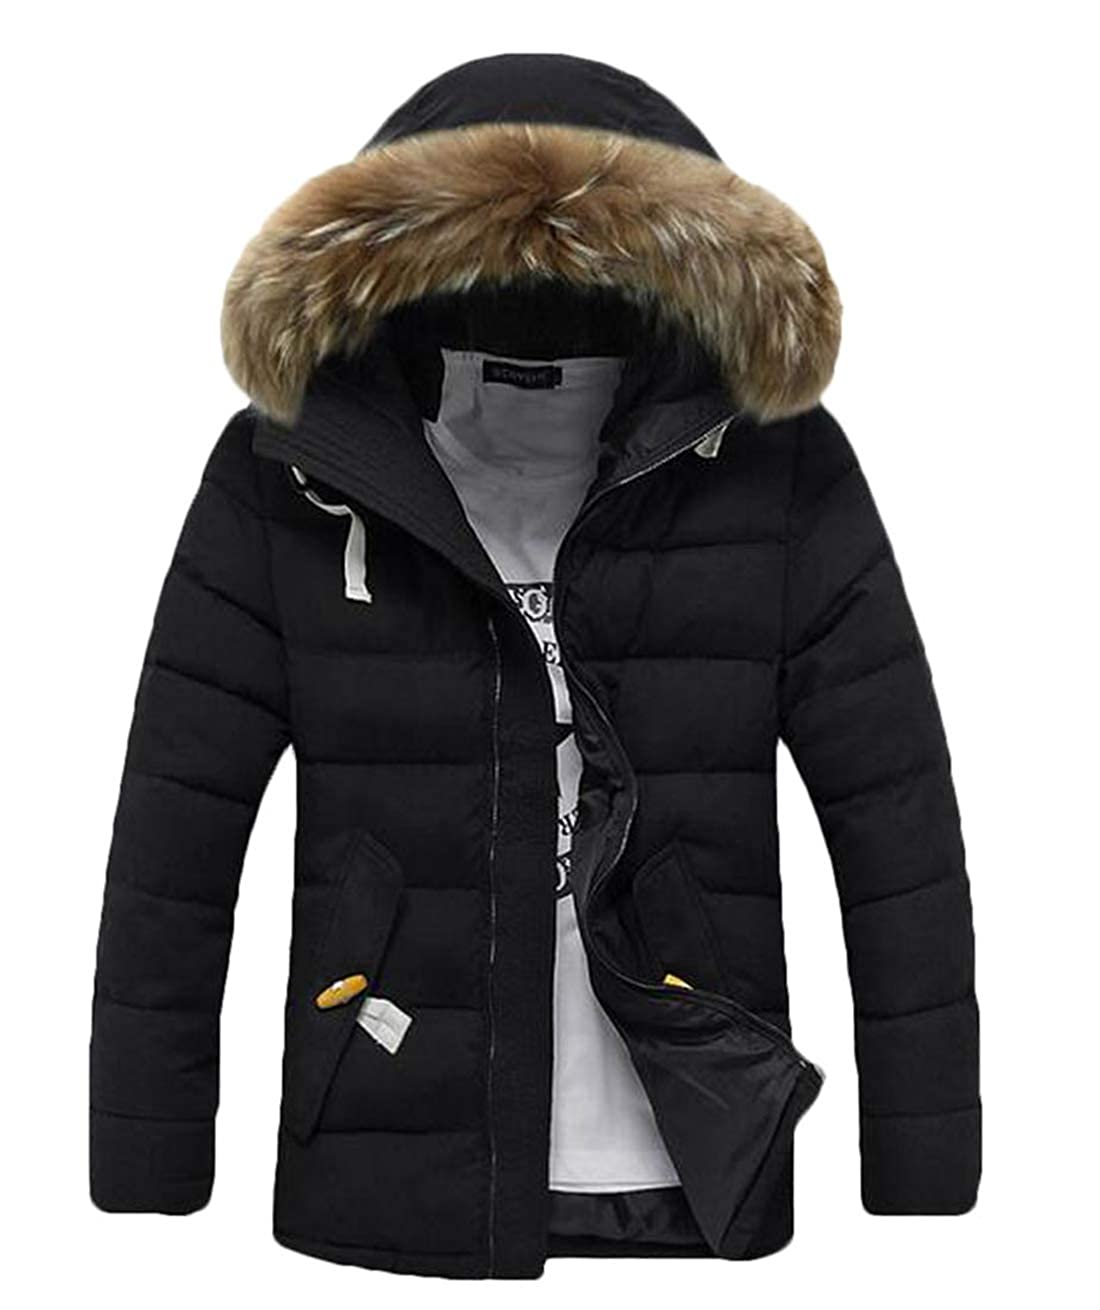 Black Domple Mens Winter Warm Quilted Thicken Hooded Faux Fur Collar Coat Padded Down Jacket